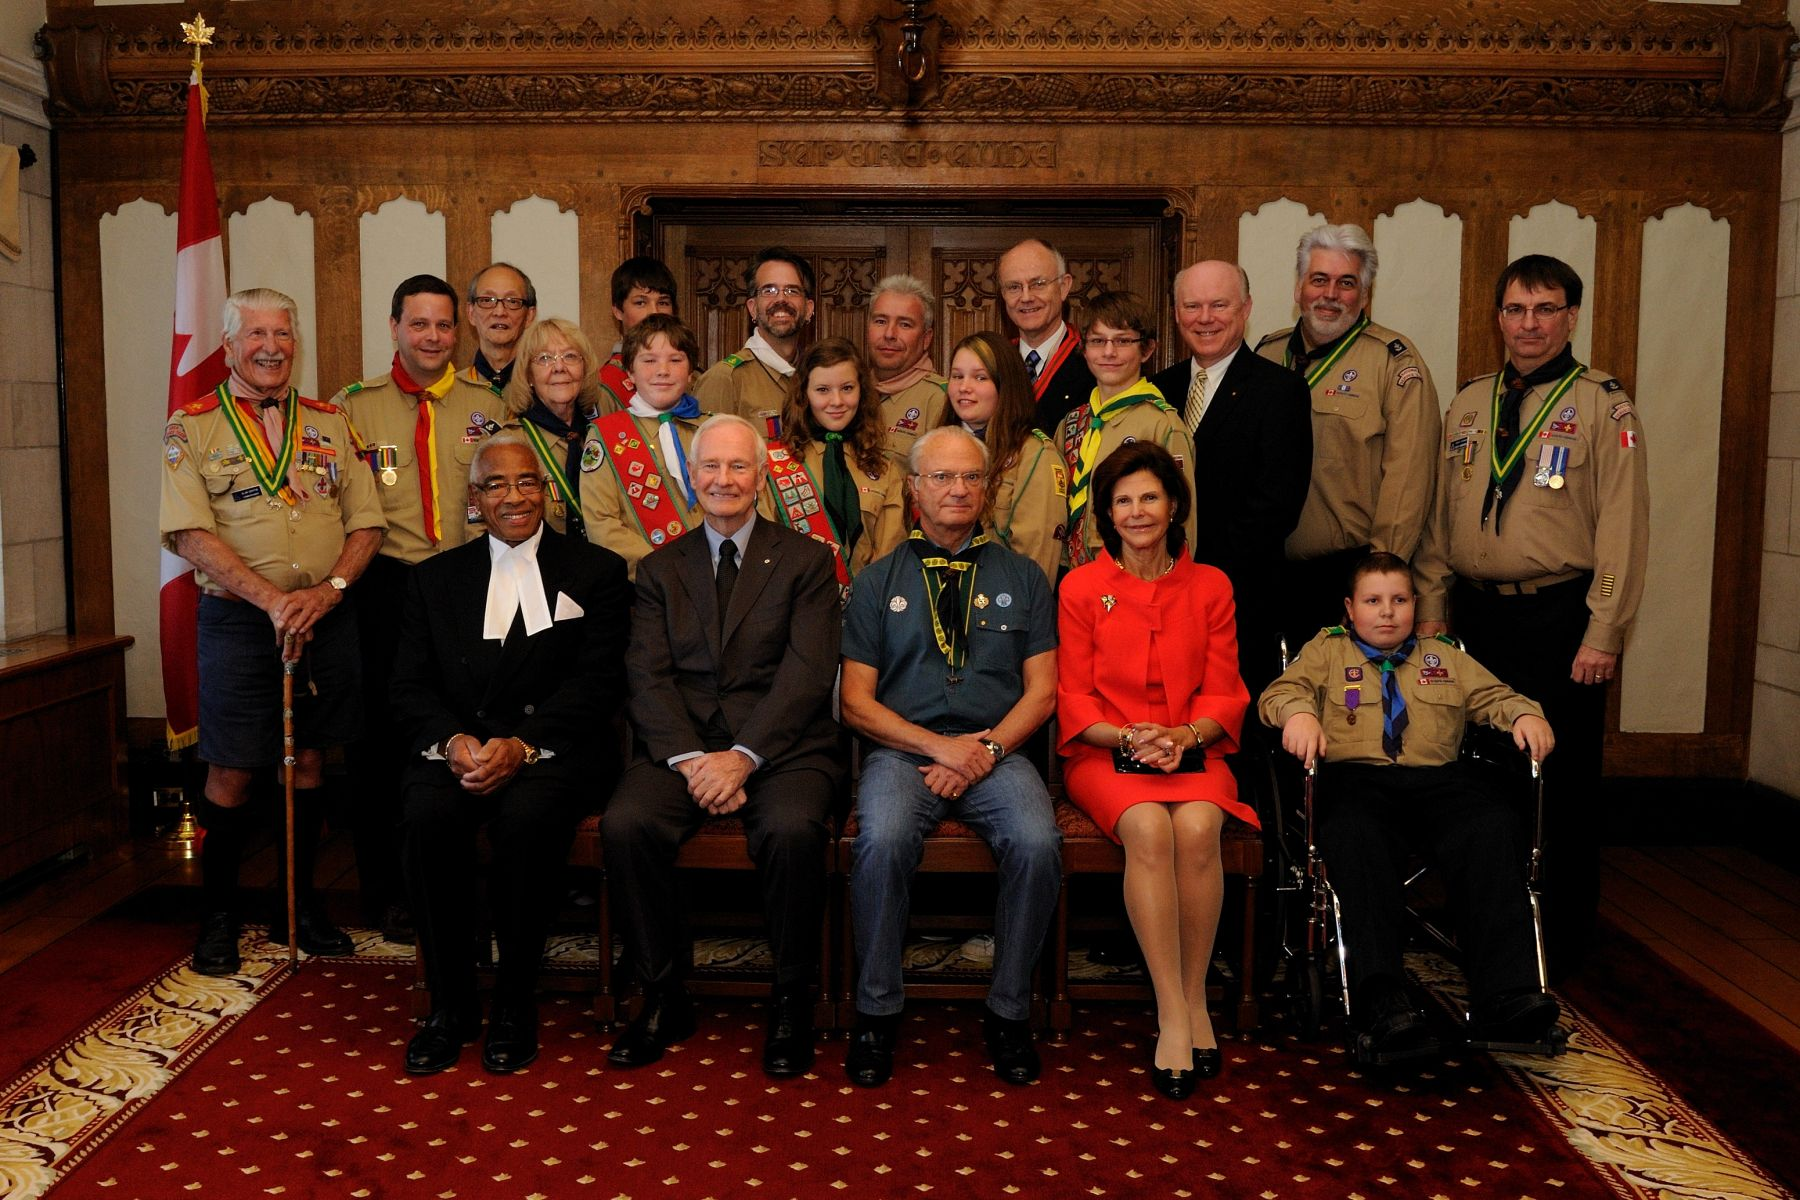 Governor General David Johnston was photographed with the sixteen recipients that were honoured along with His Majesty King Carl Gustaf of Sweden, Honourary President of the World Scout Foundation (right of Governor General), and Her Majesty Queen Silvia (right of King Carl Gustaf) who also attended the event.